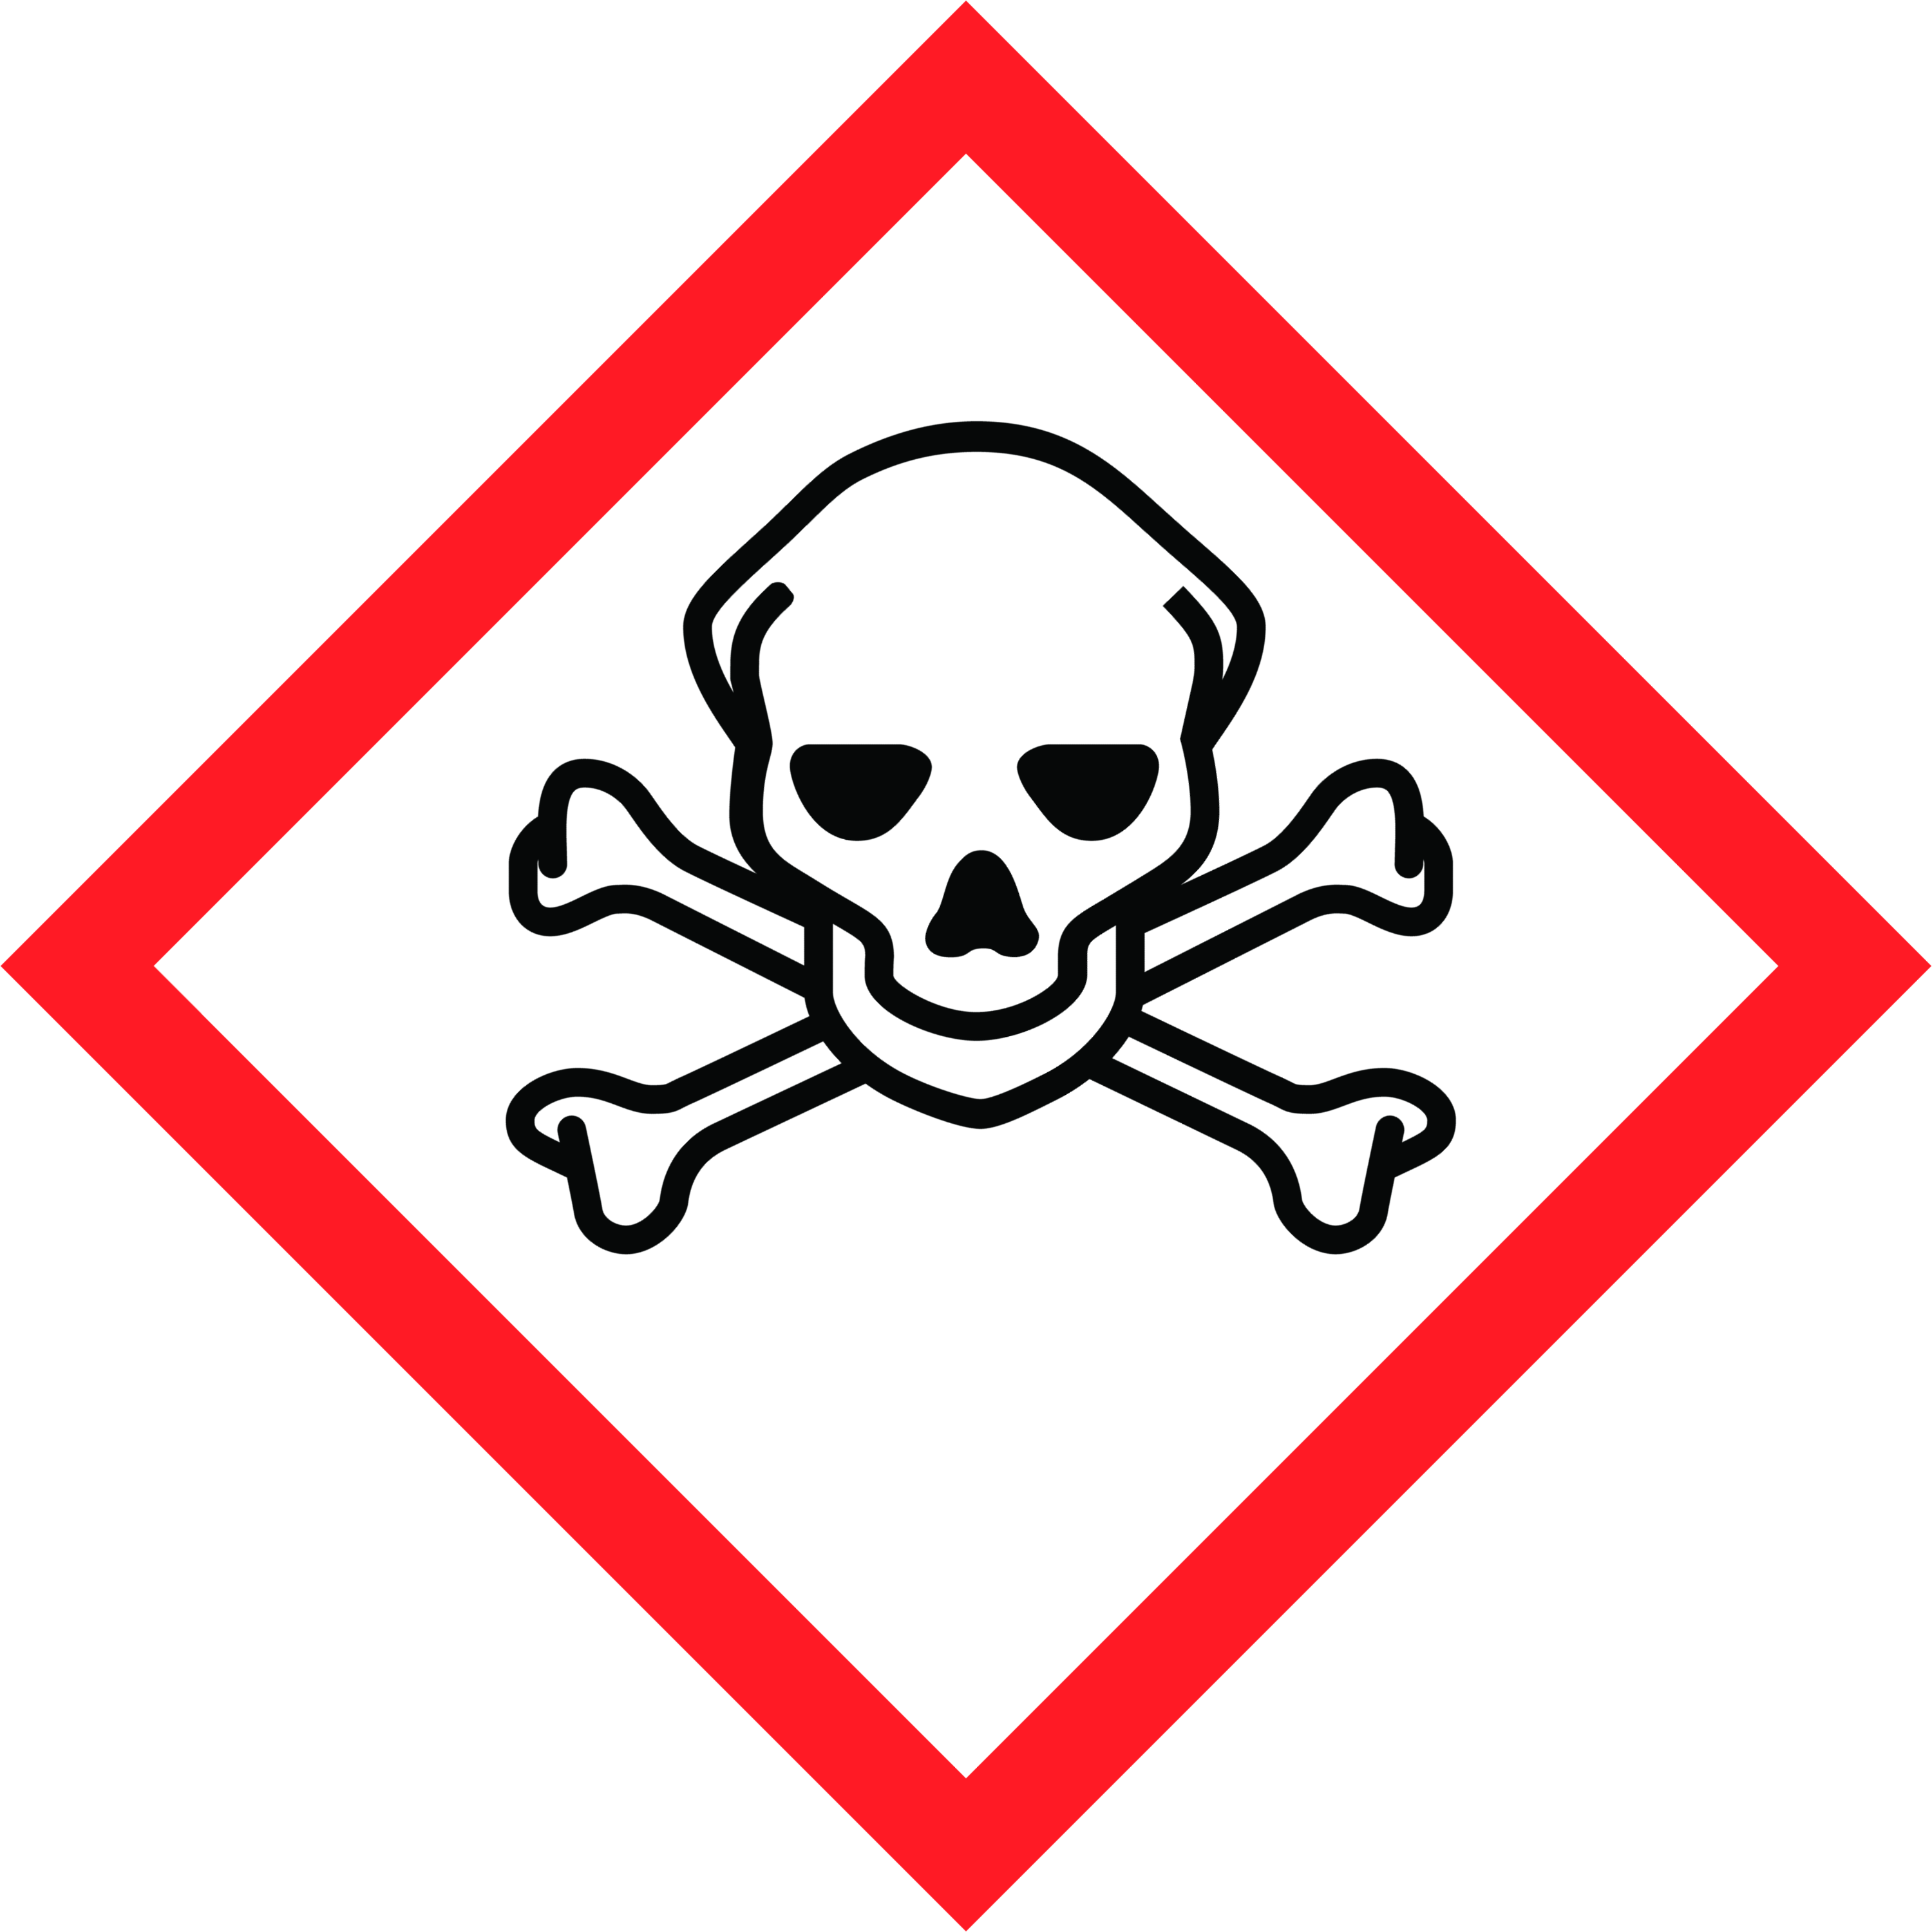 06 >> Ghs Hazard Pictograms For Download